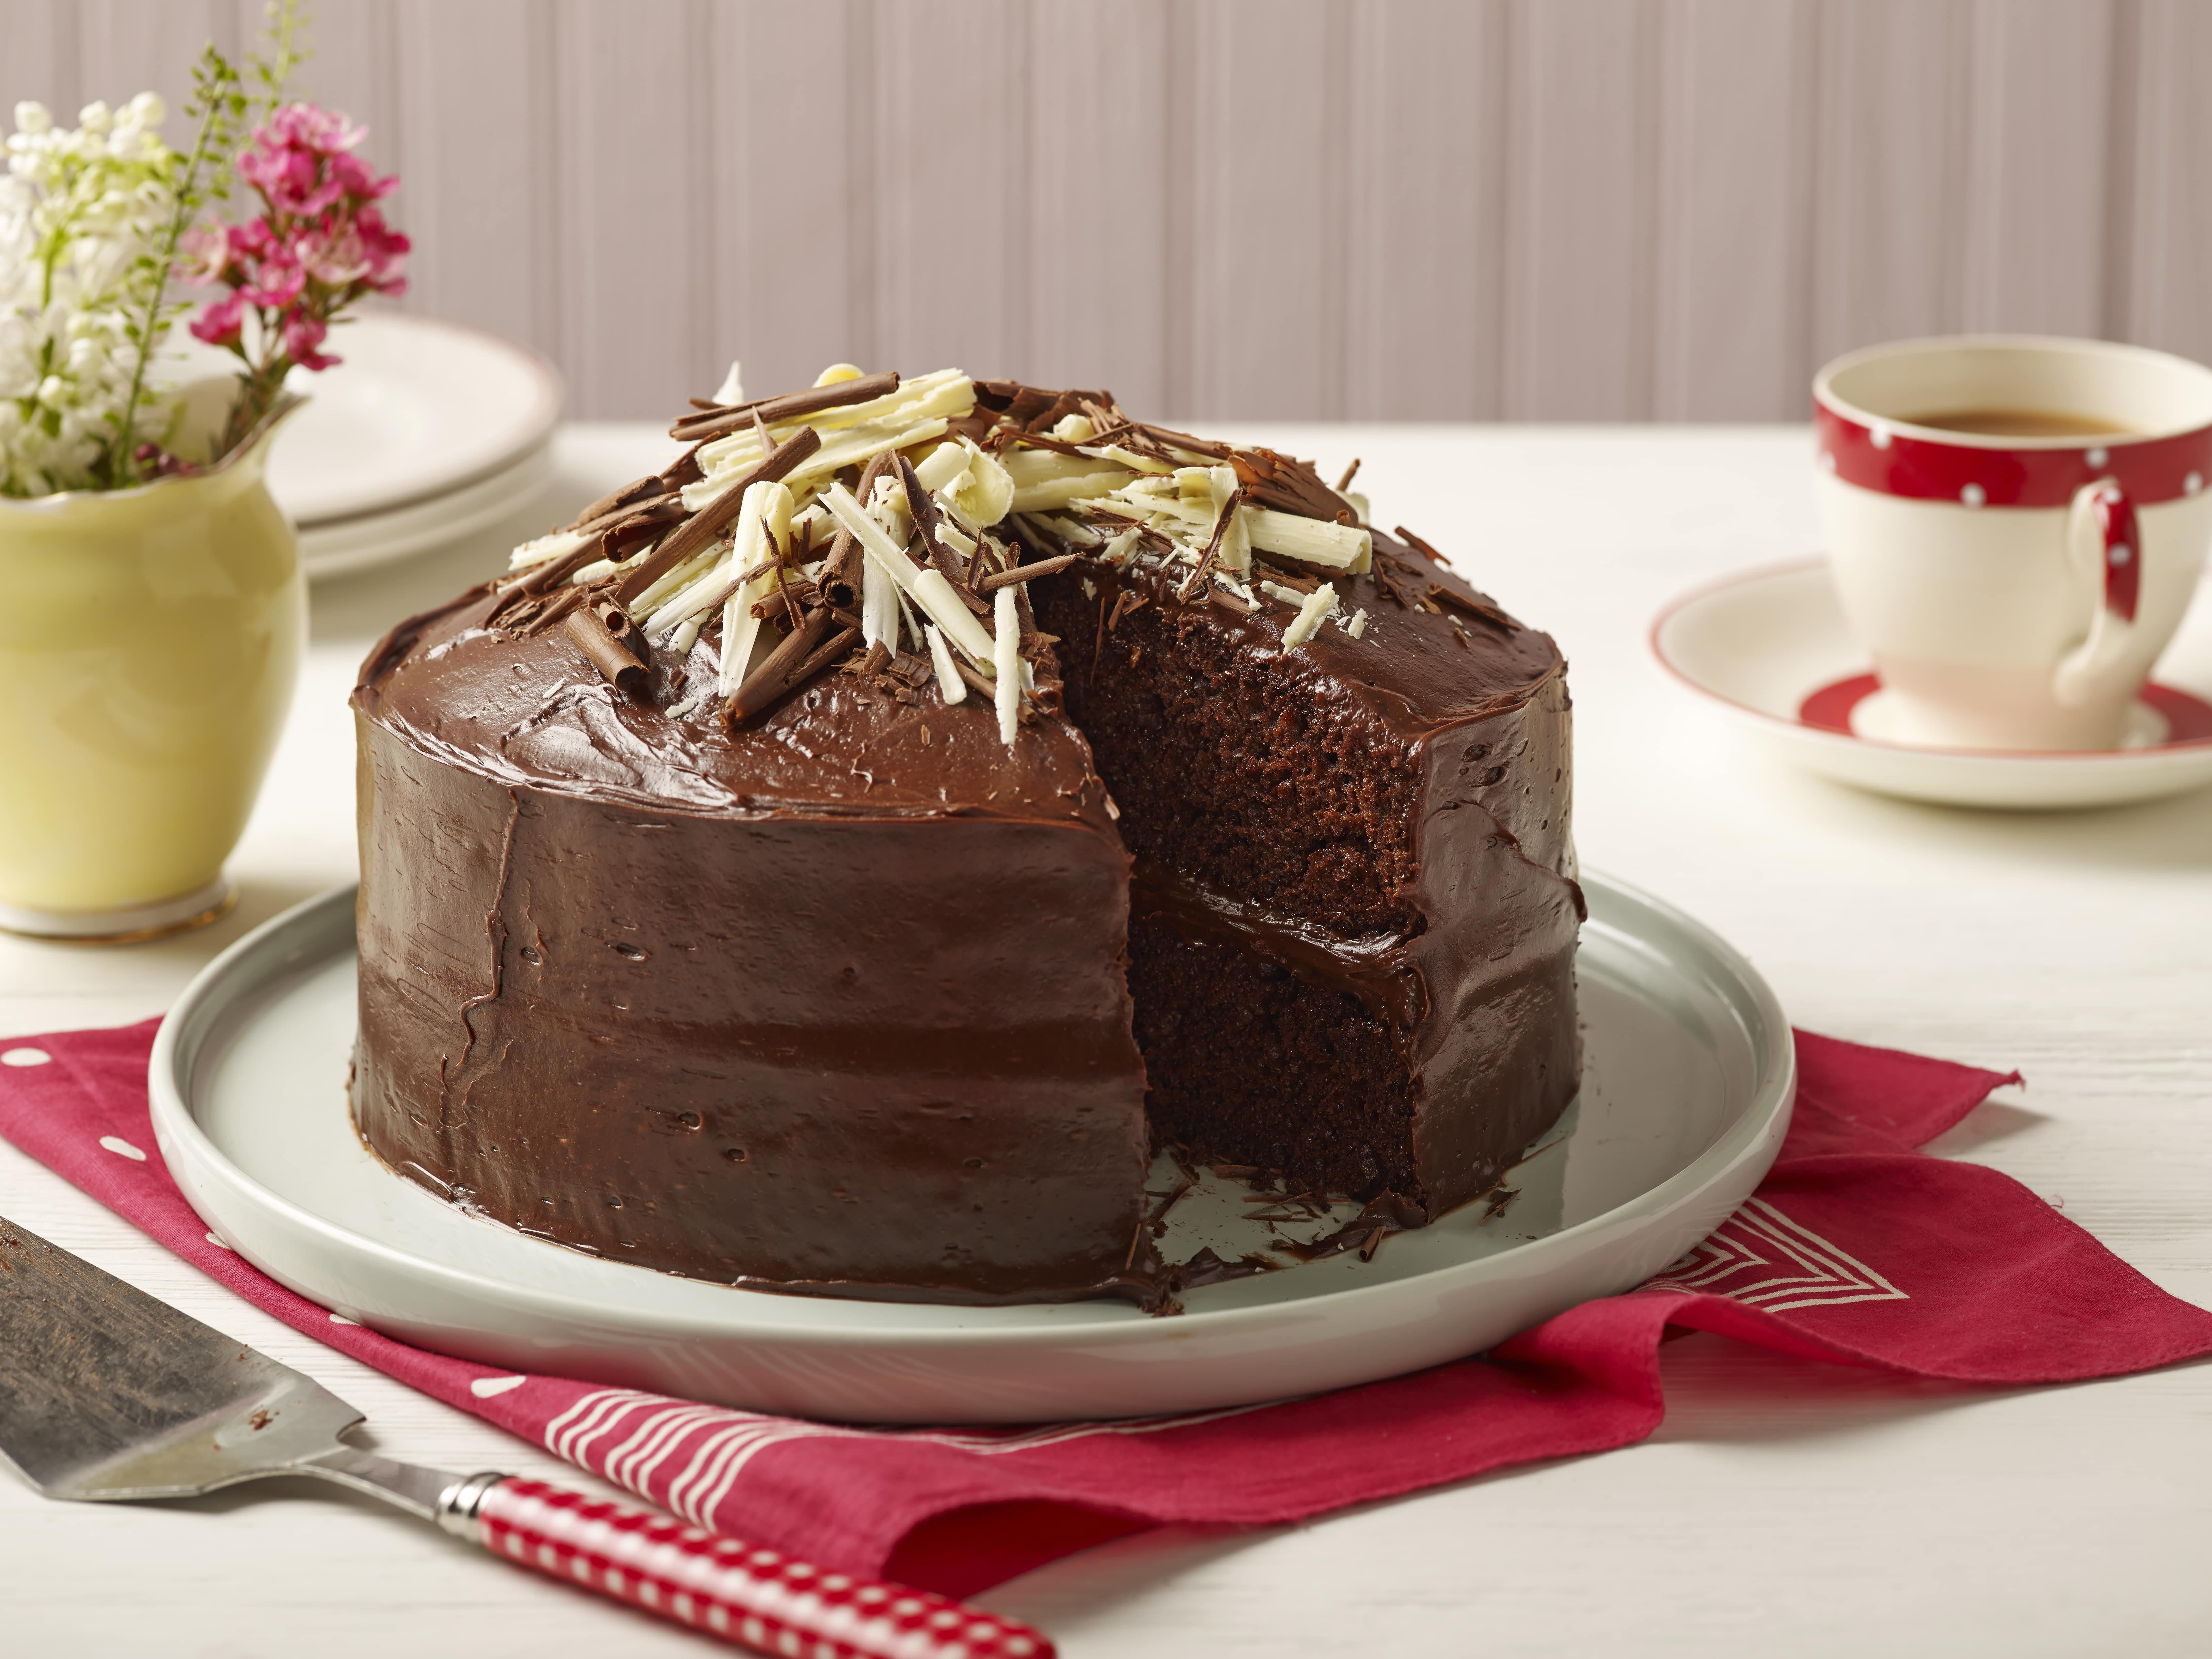 A rich chocolate cake on a plate with a slice taken out of it.